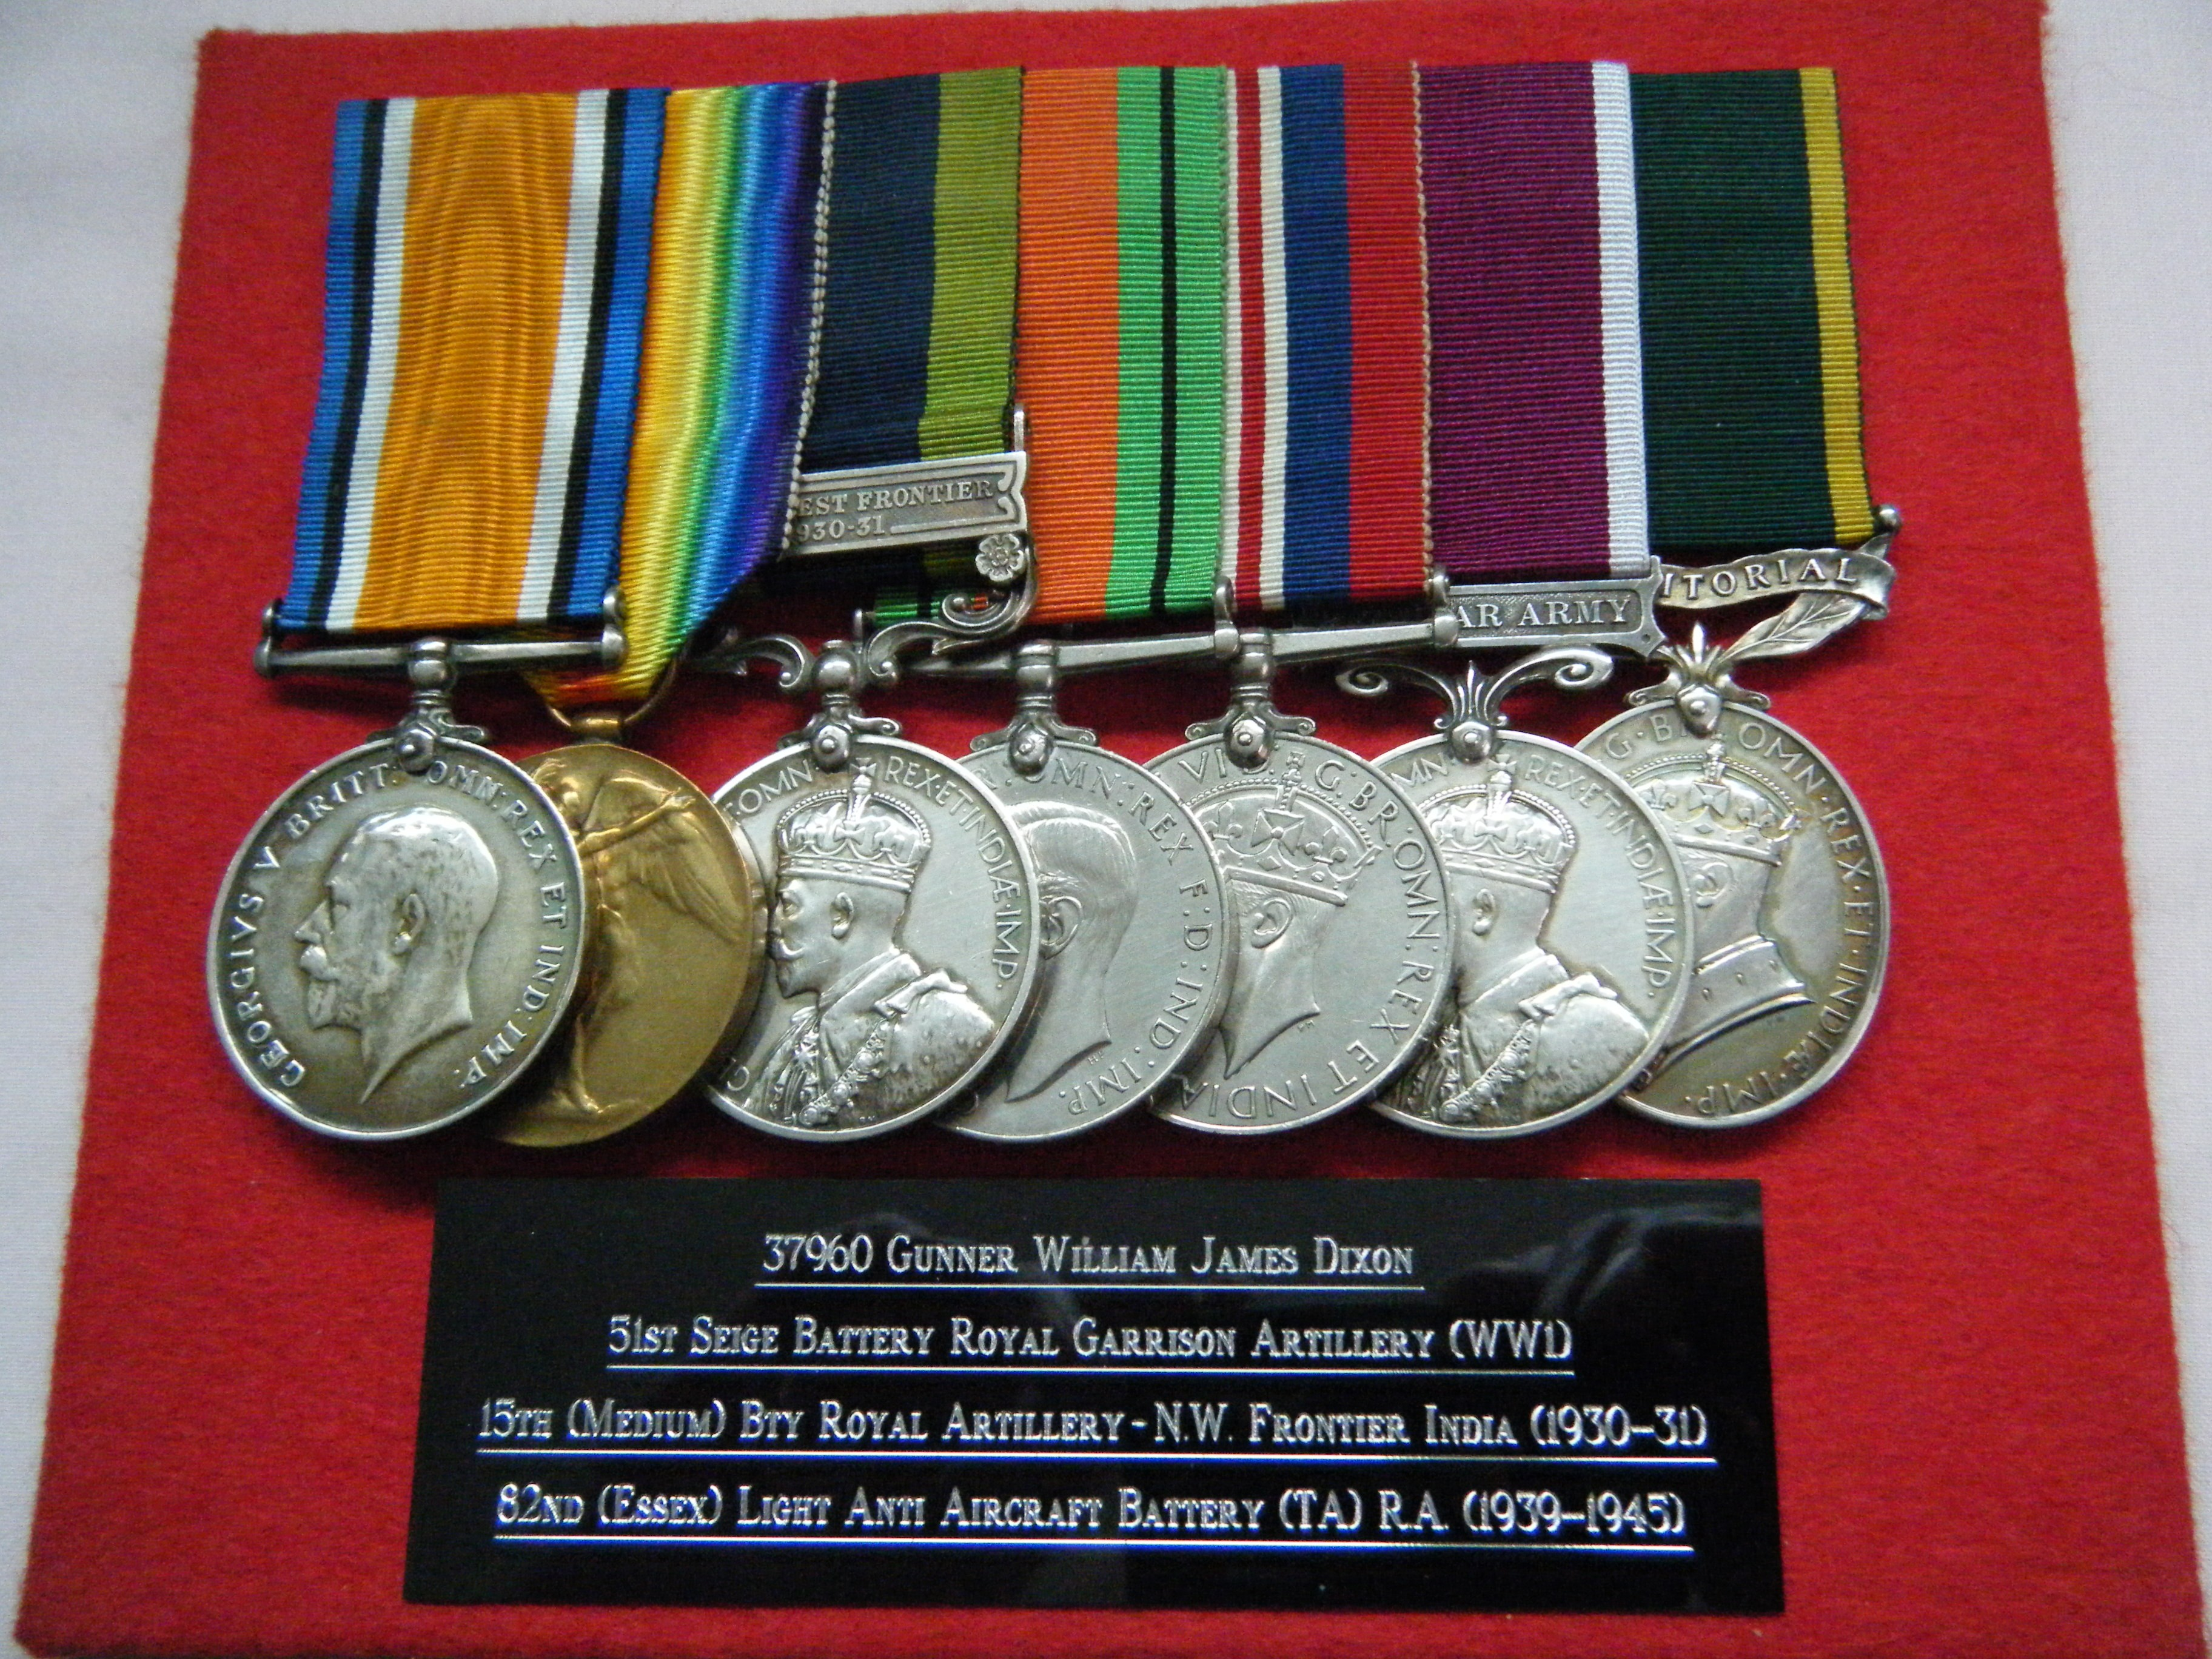 SEVEN.  37960/1408089 Gnr. W.J. Dixon, Royal Artillery (with full copy papers).